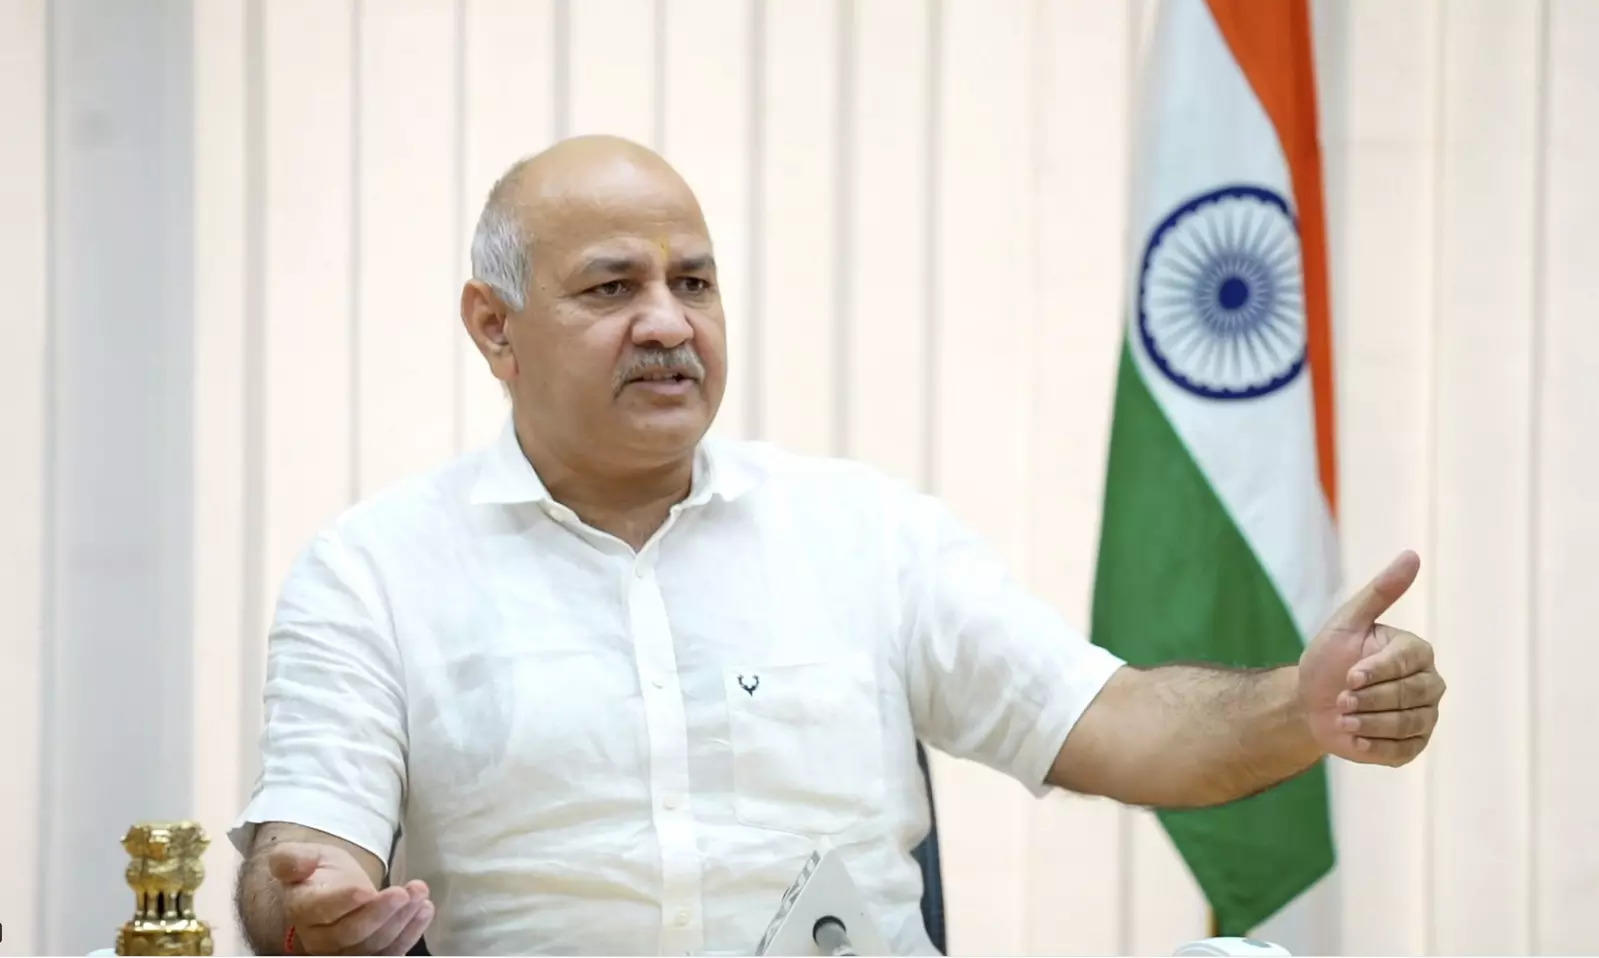 Bharat Biotech says can't provide additional Covaxin doses to Delhi: Manish Sisodia